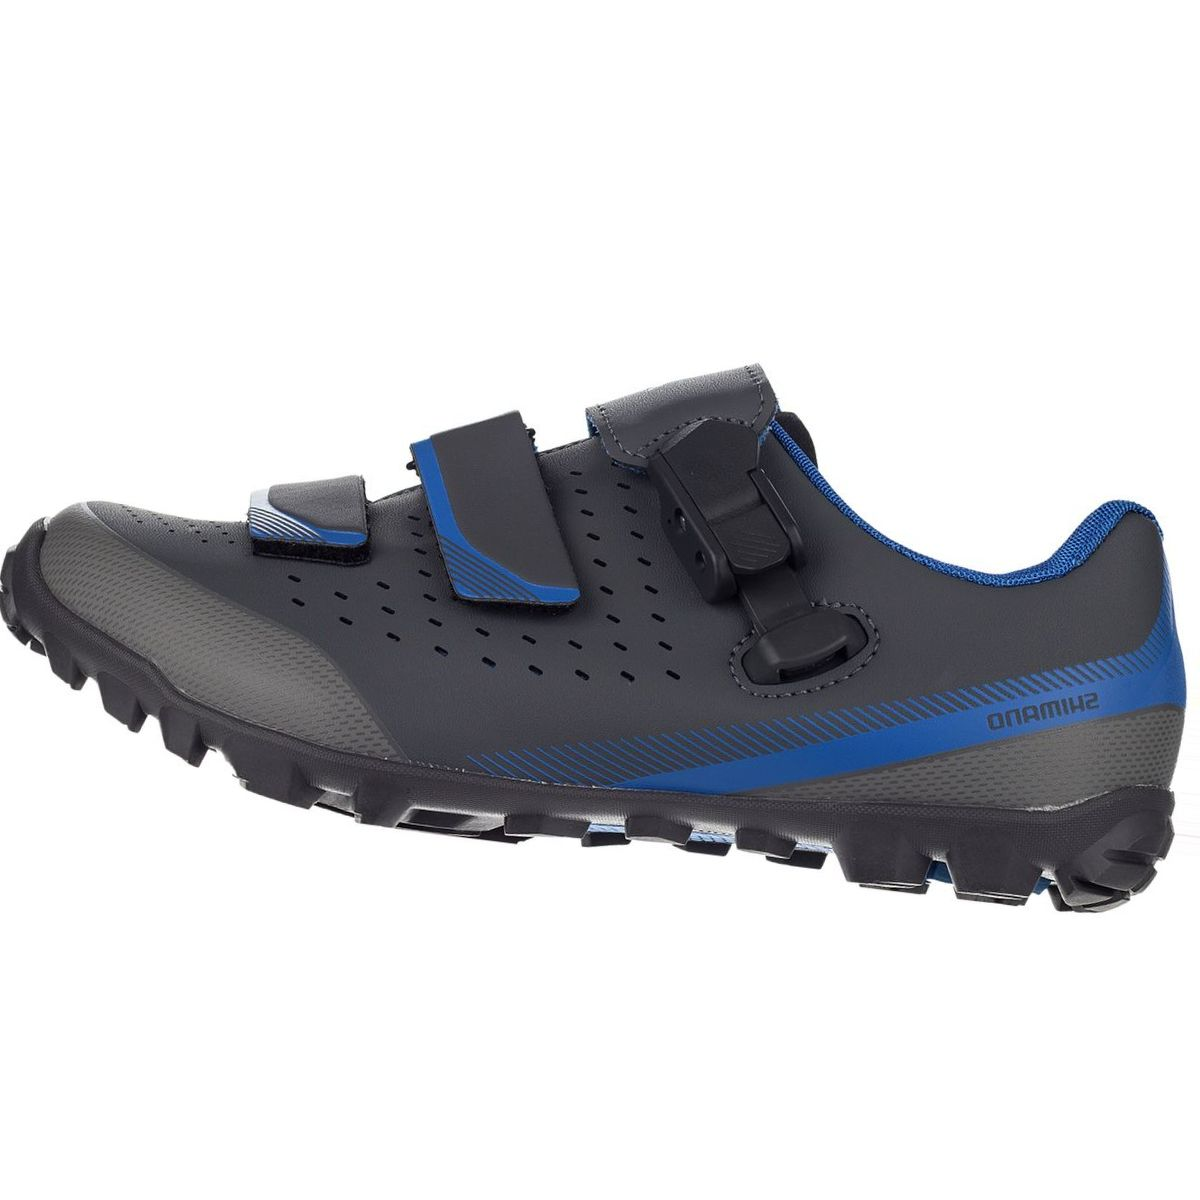 Shimano SH-ME3 Cycling Shoe - Women's